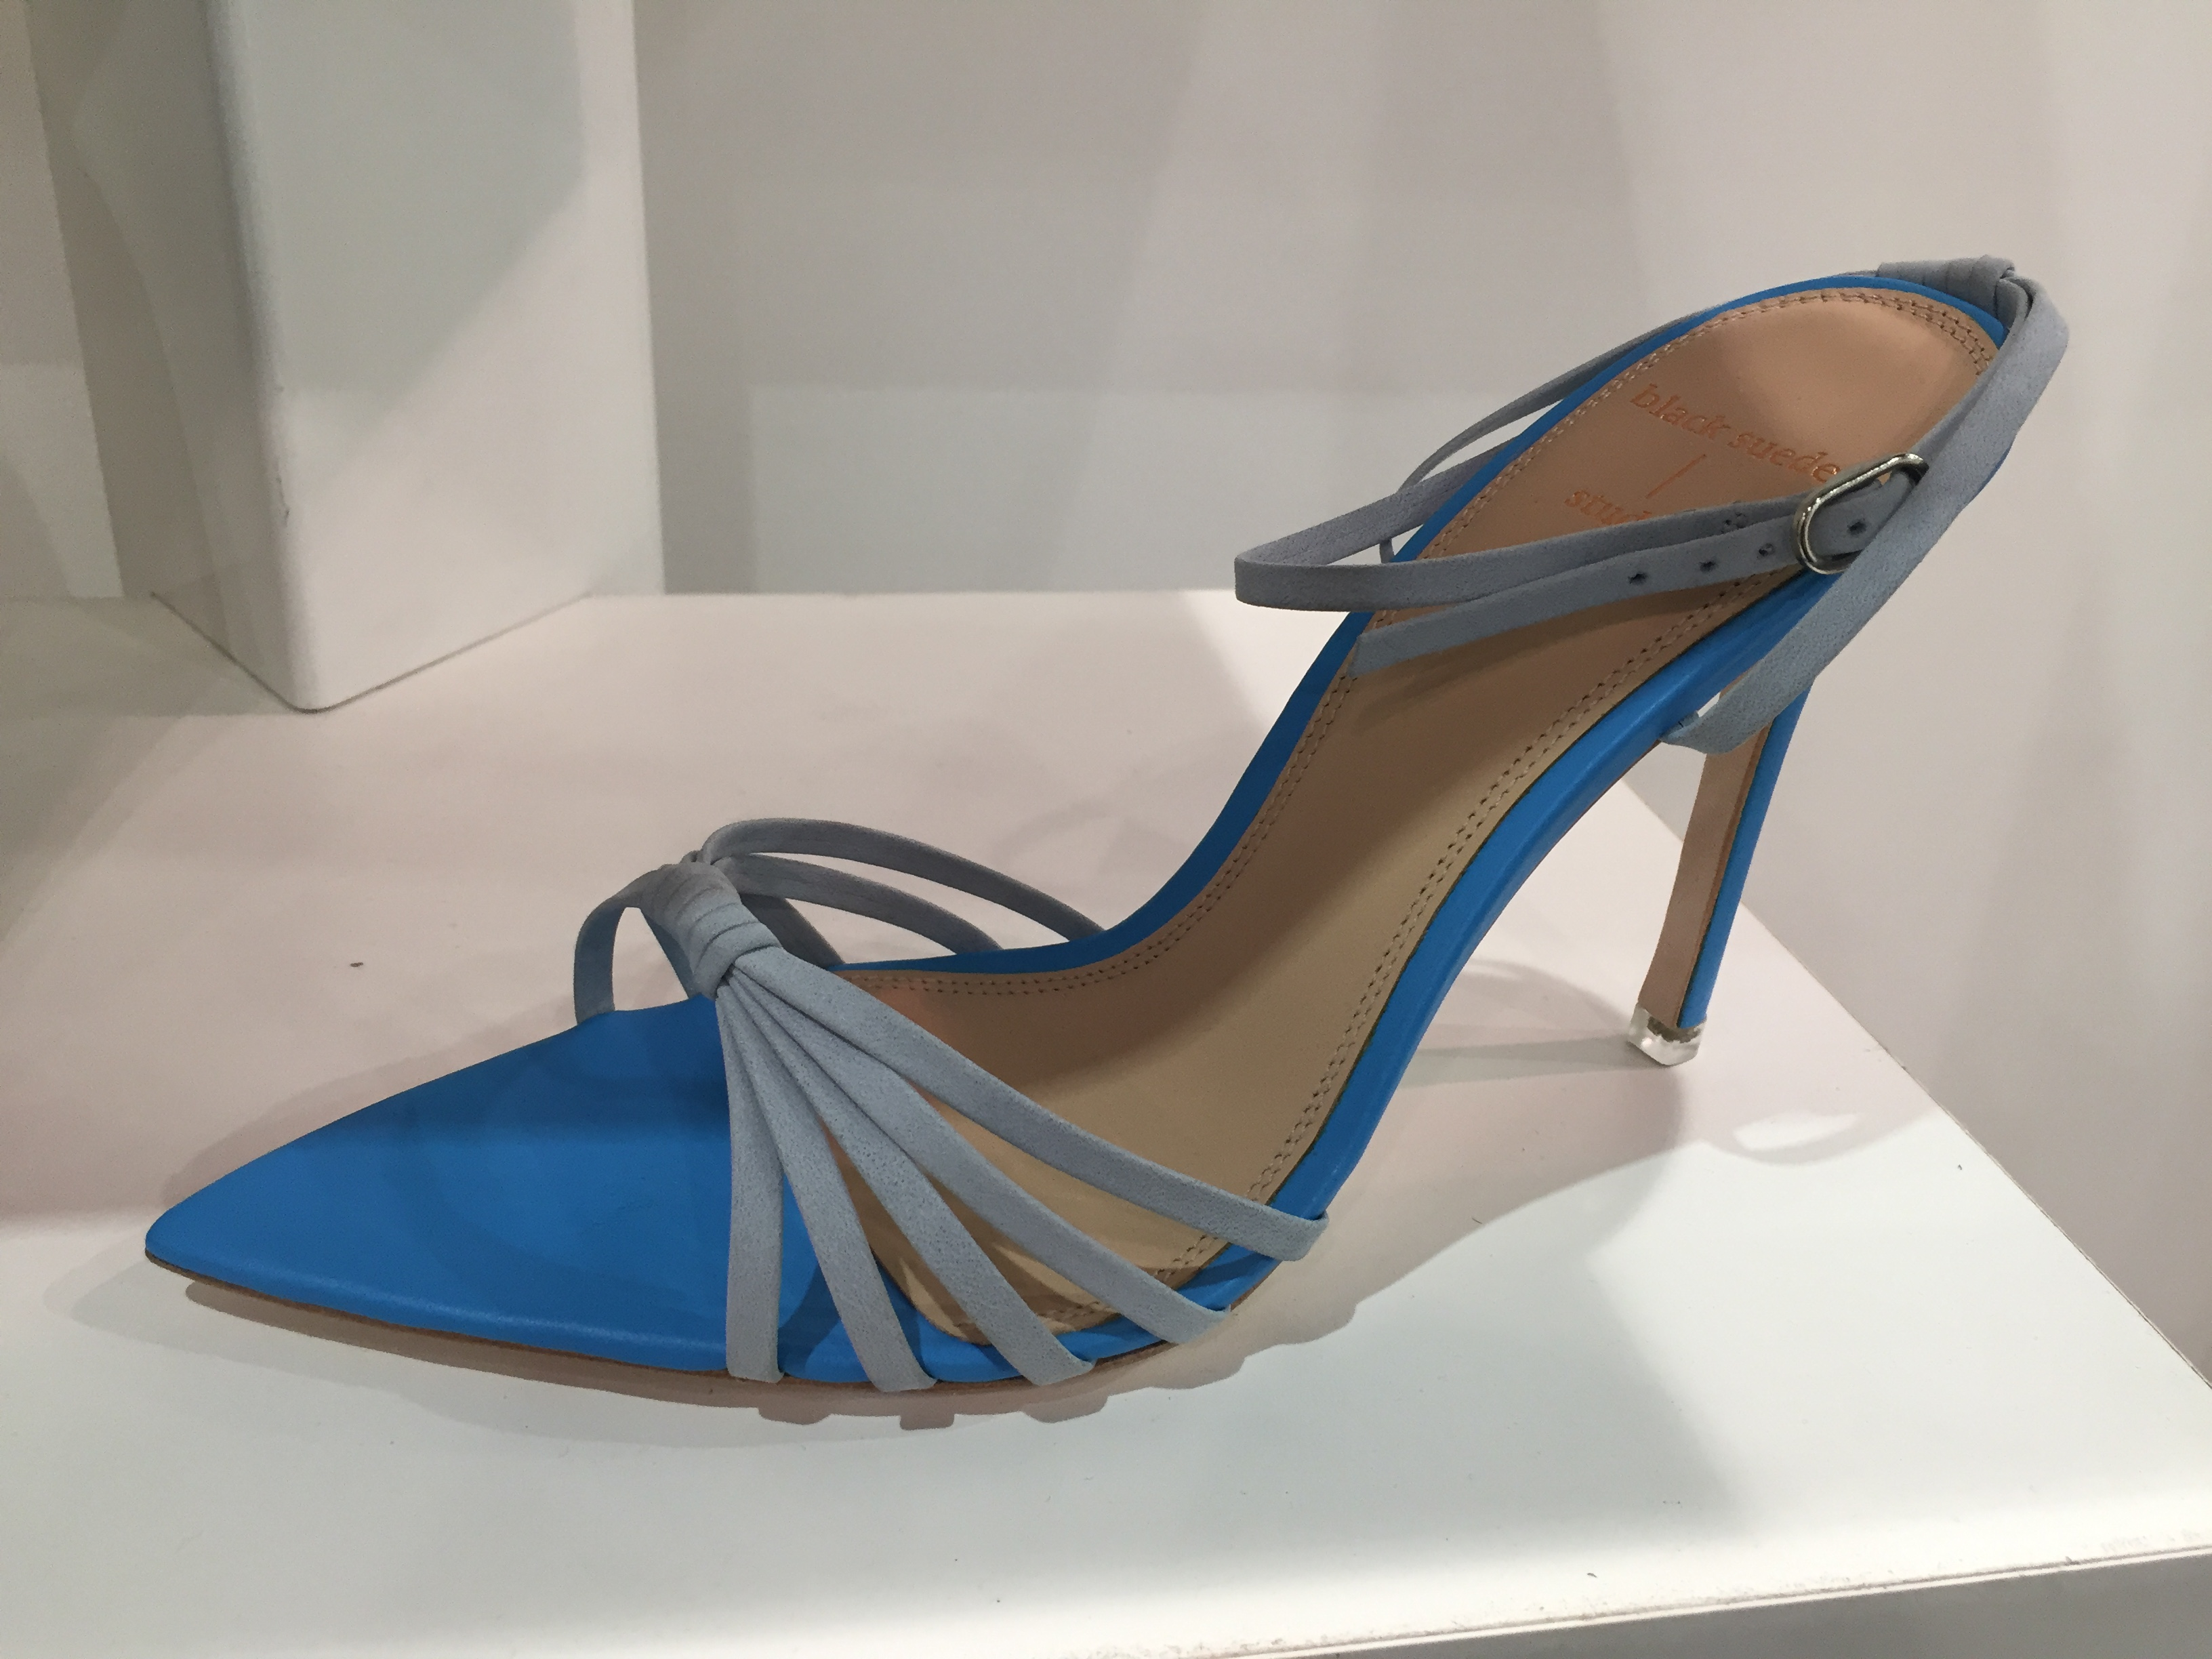 A pointed-toe heeled sandal from Black Suede.